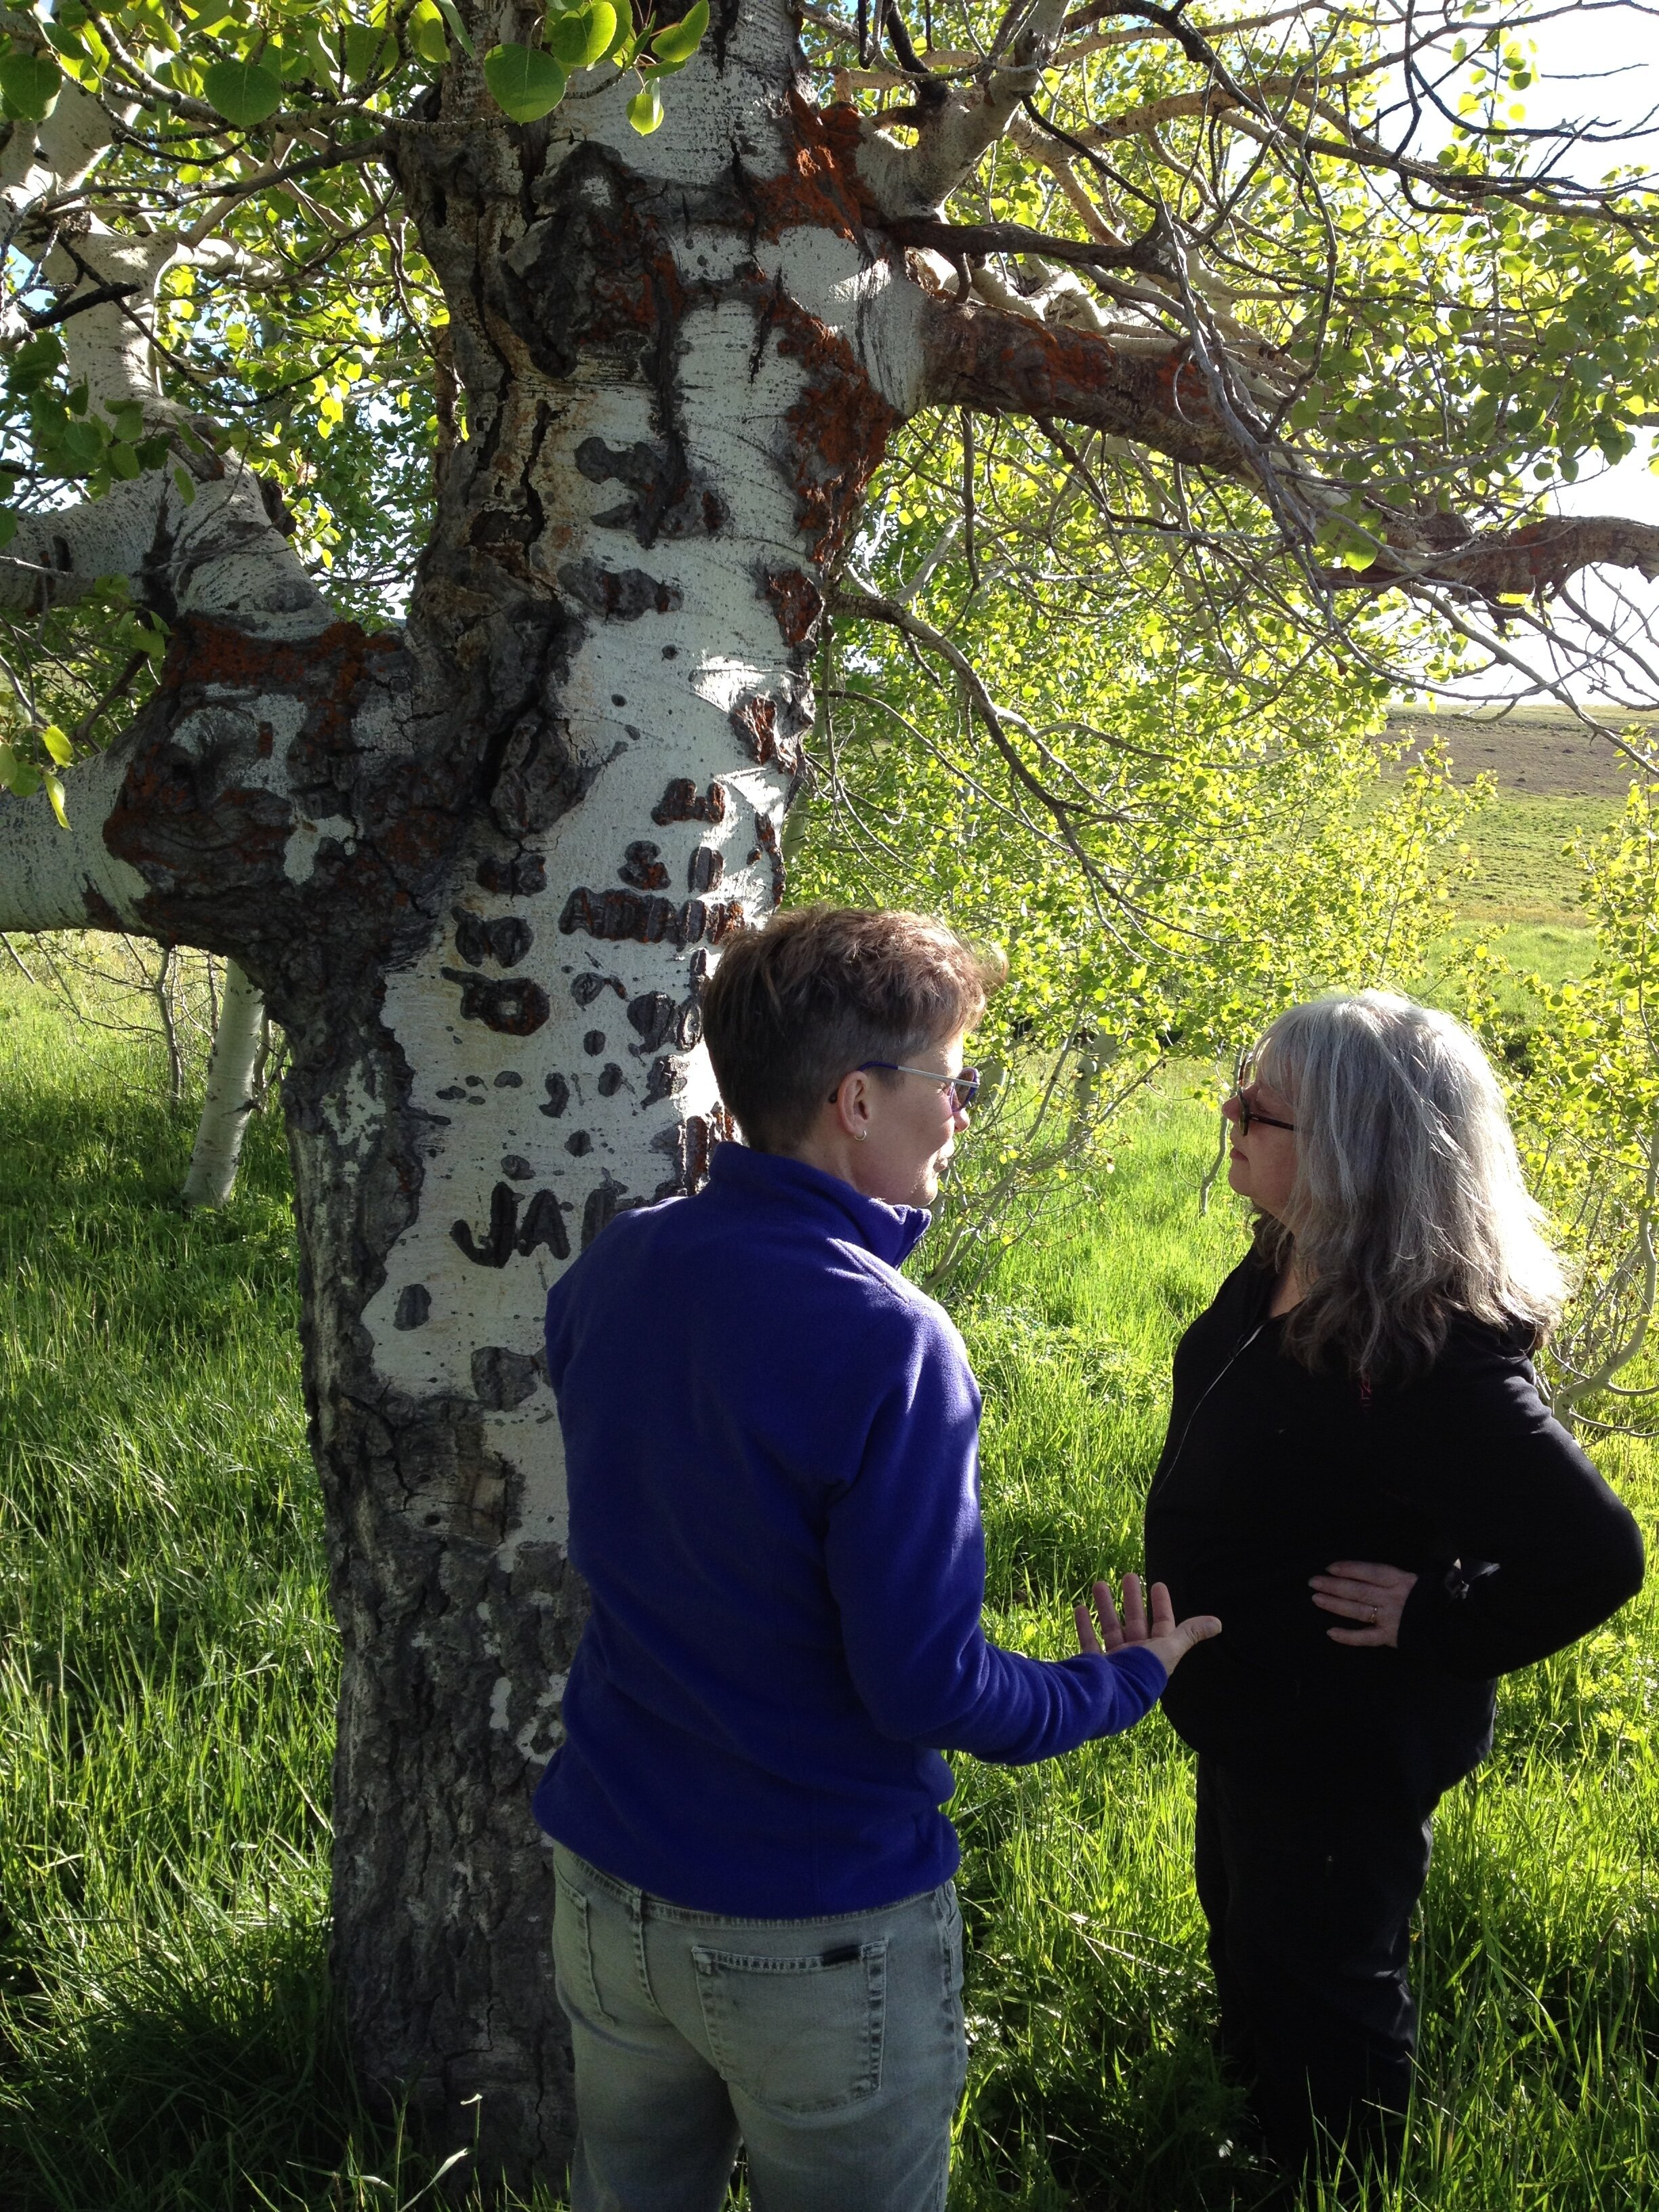 Stephanie LeMenager (English/ENVS) and Marsha Weisiger (History/ENVS) investigate an arborglyph in the Steens Mountain Cooperative Management and Protection Area, 2018. Photo by Nate Otjen.